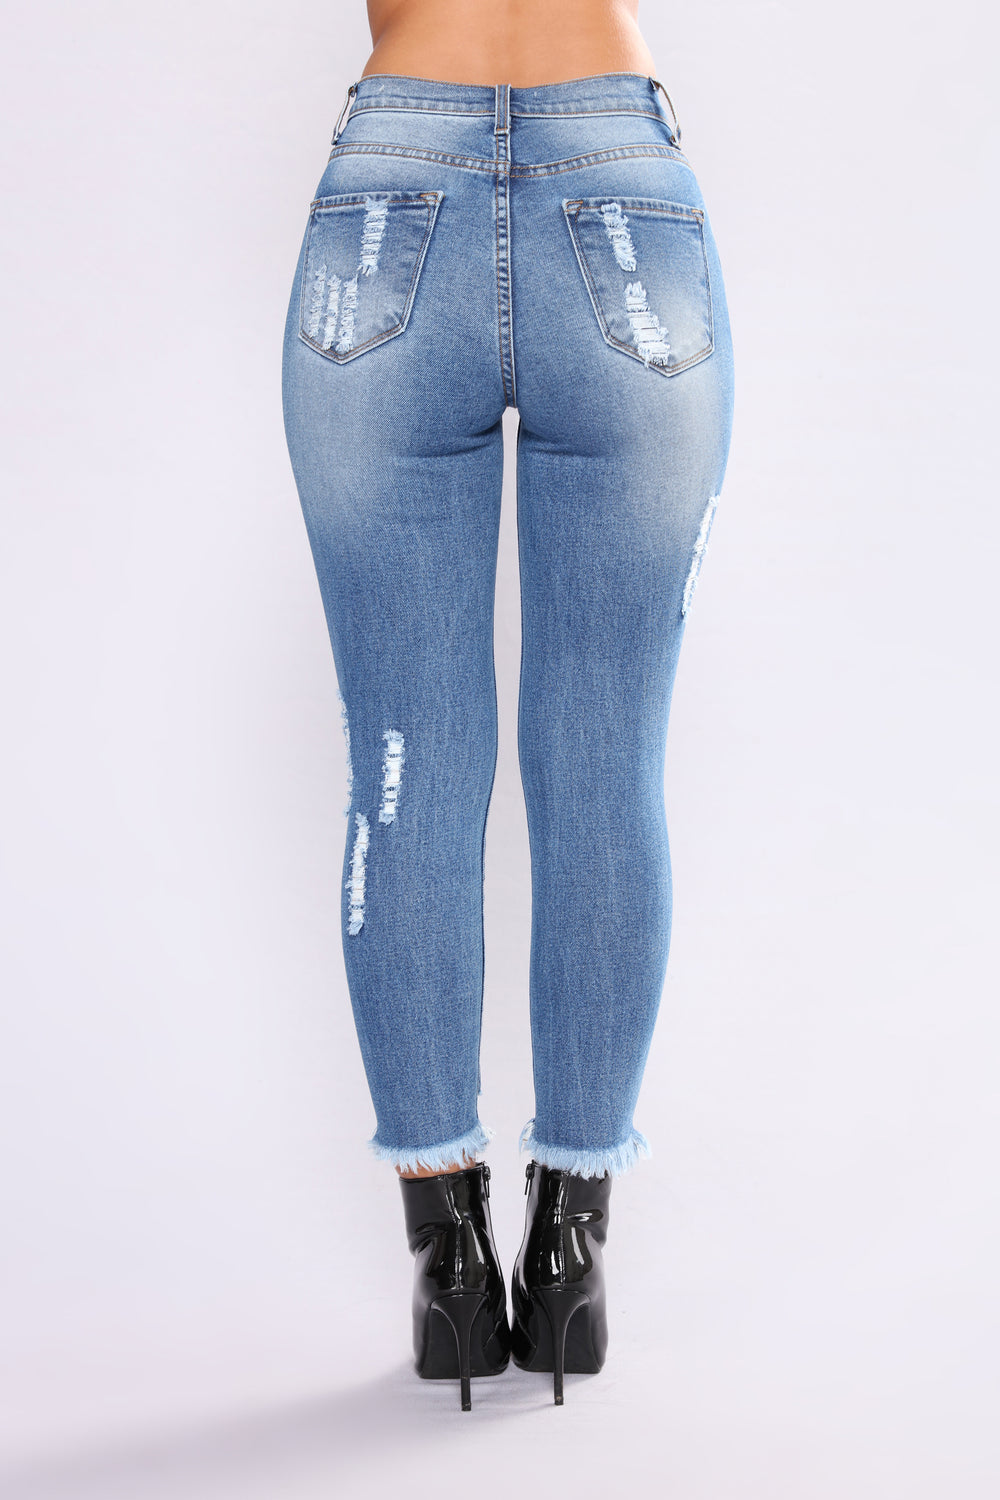 Hey There Babe Crop Jeans - Medium